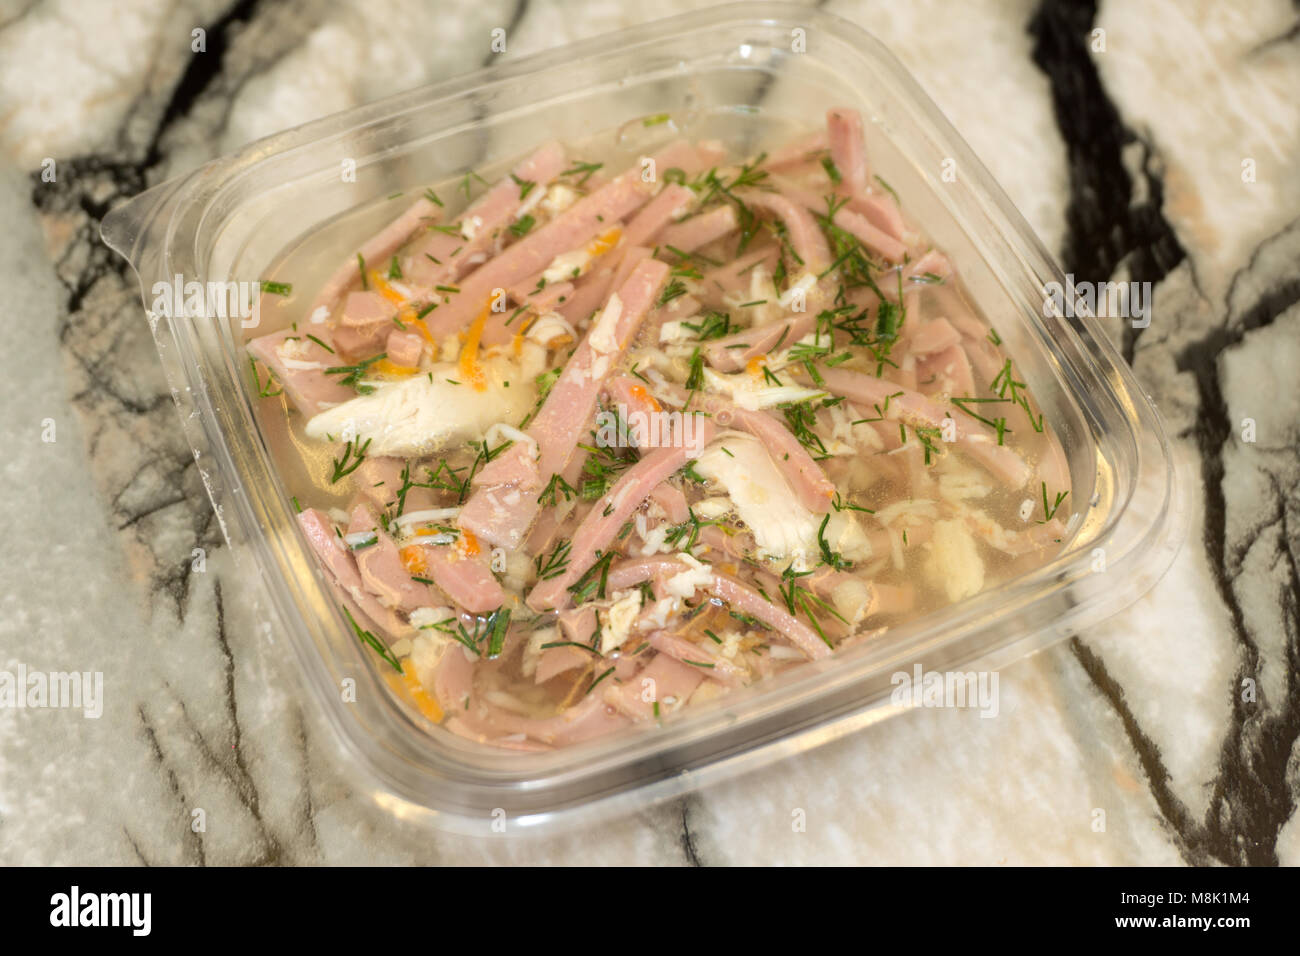 aspic home made, meat-jelly home made on a white background - Stock Image